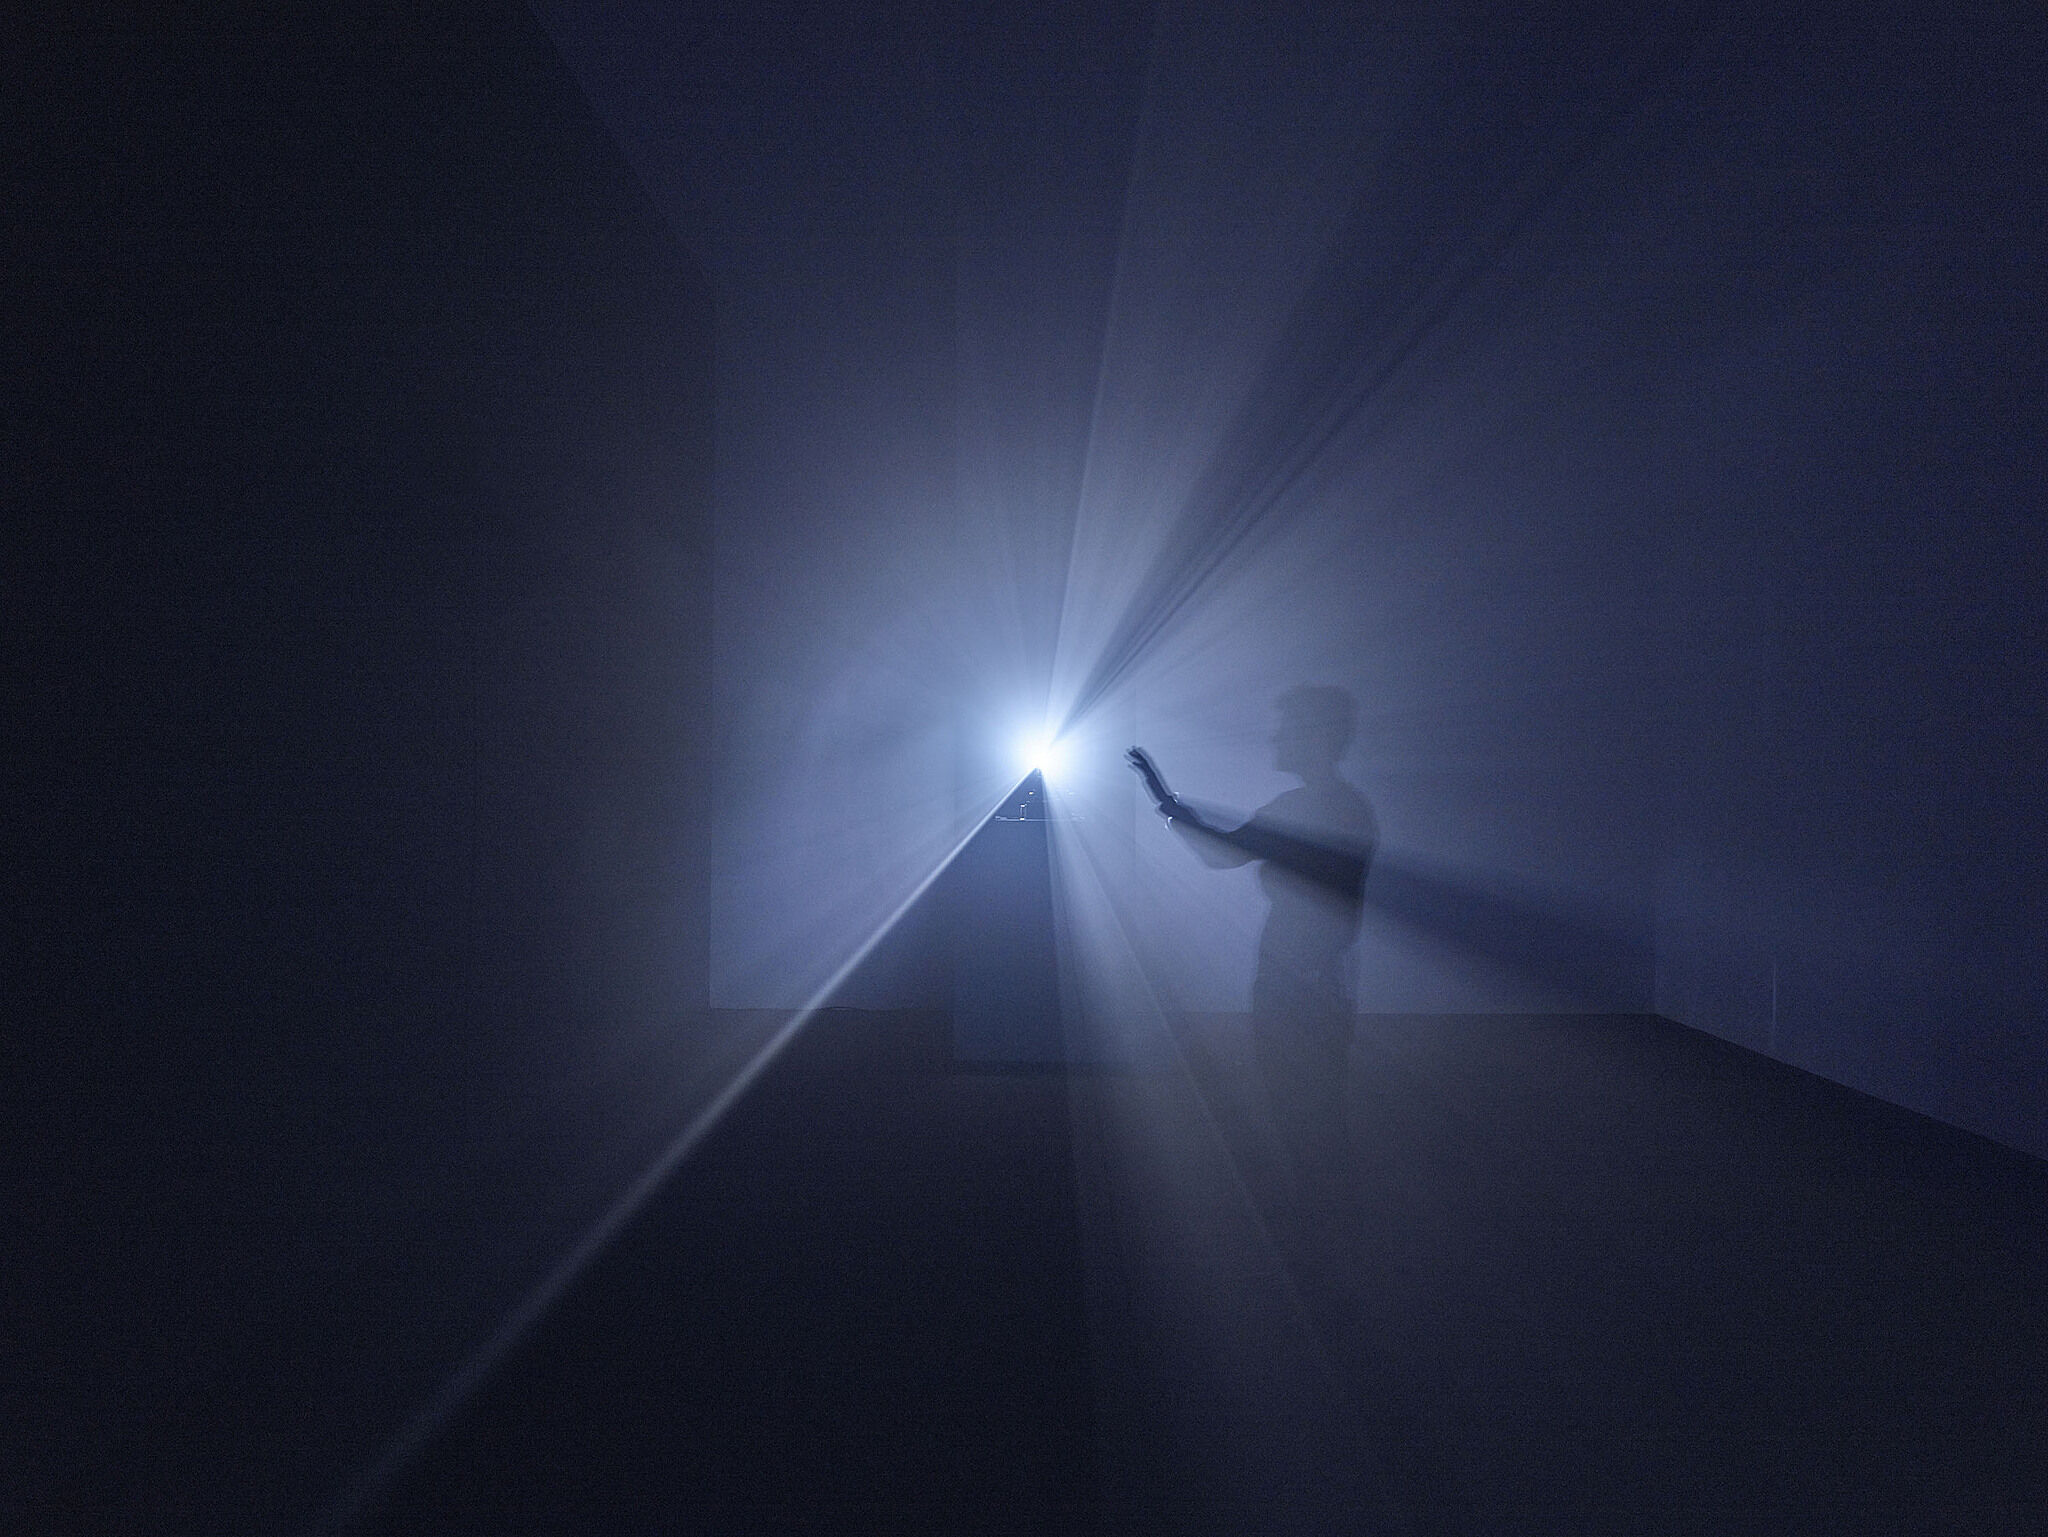 A man holds his hand out towards a beam of light from a film projector.